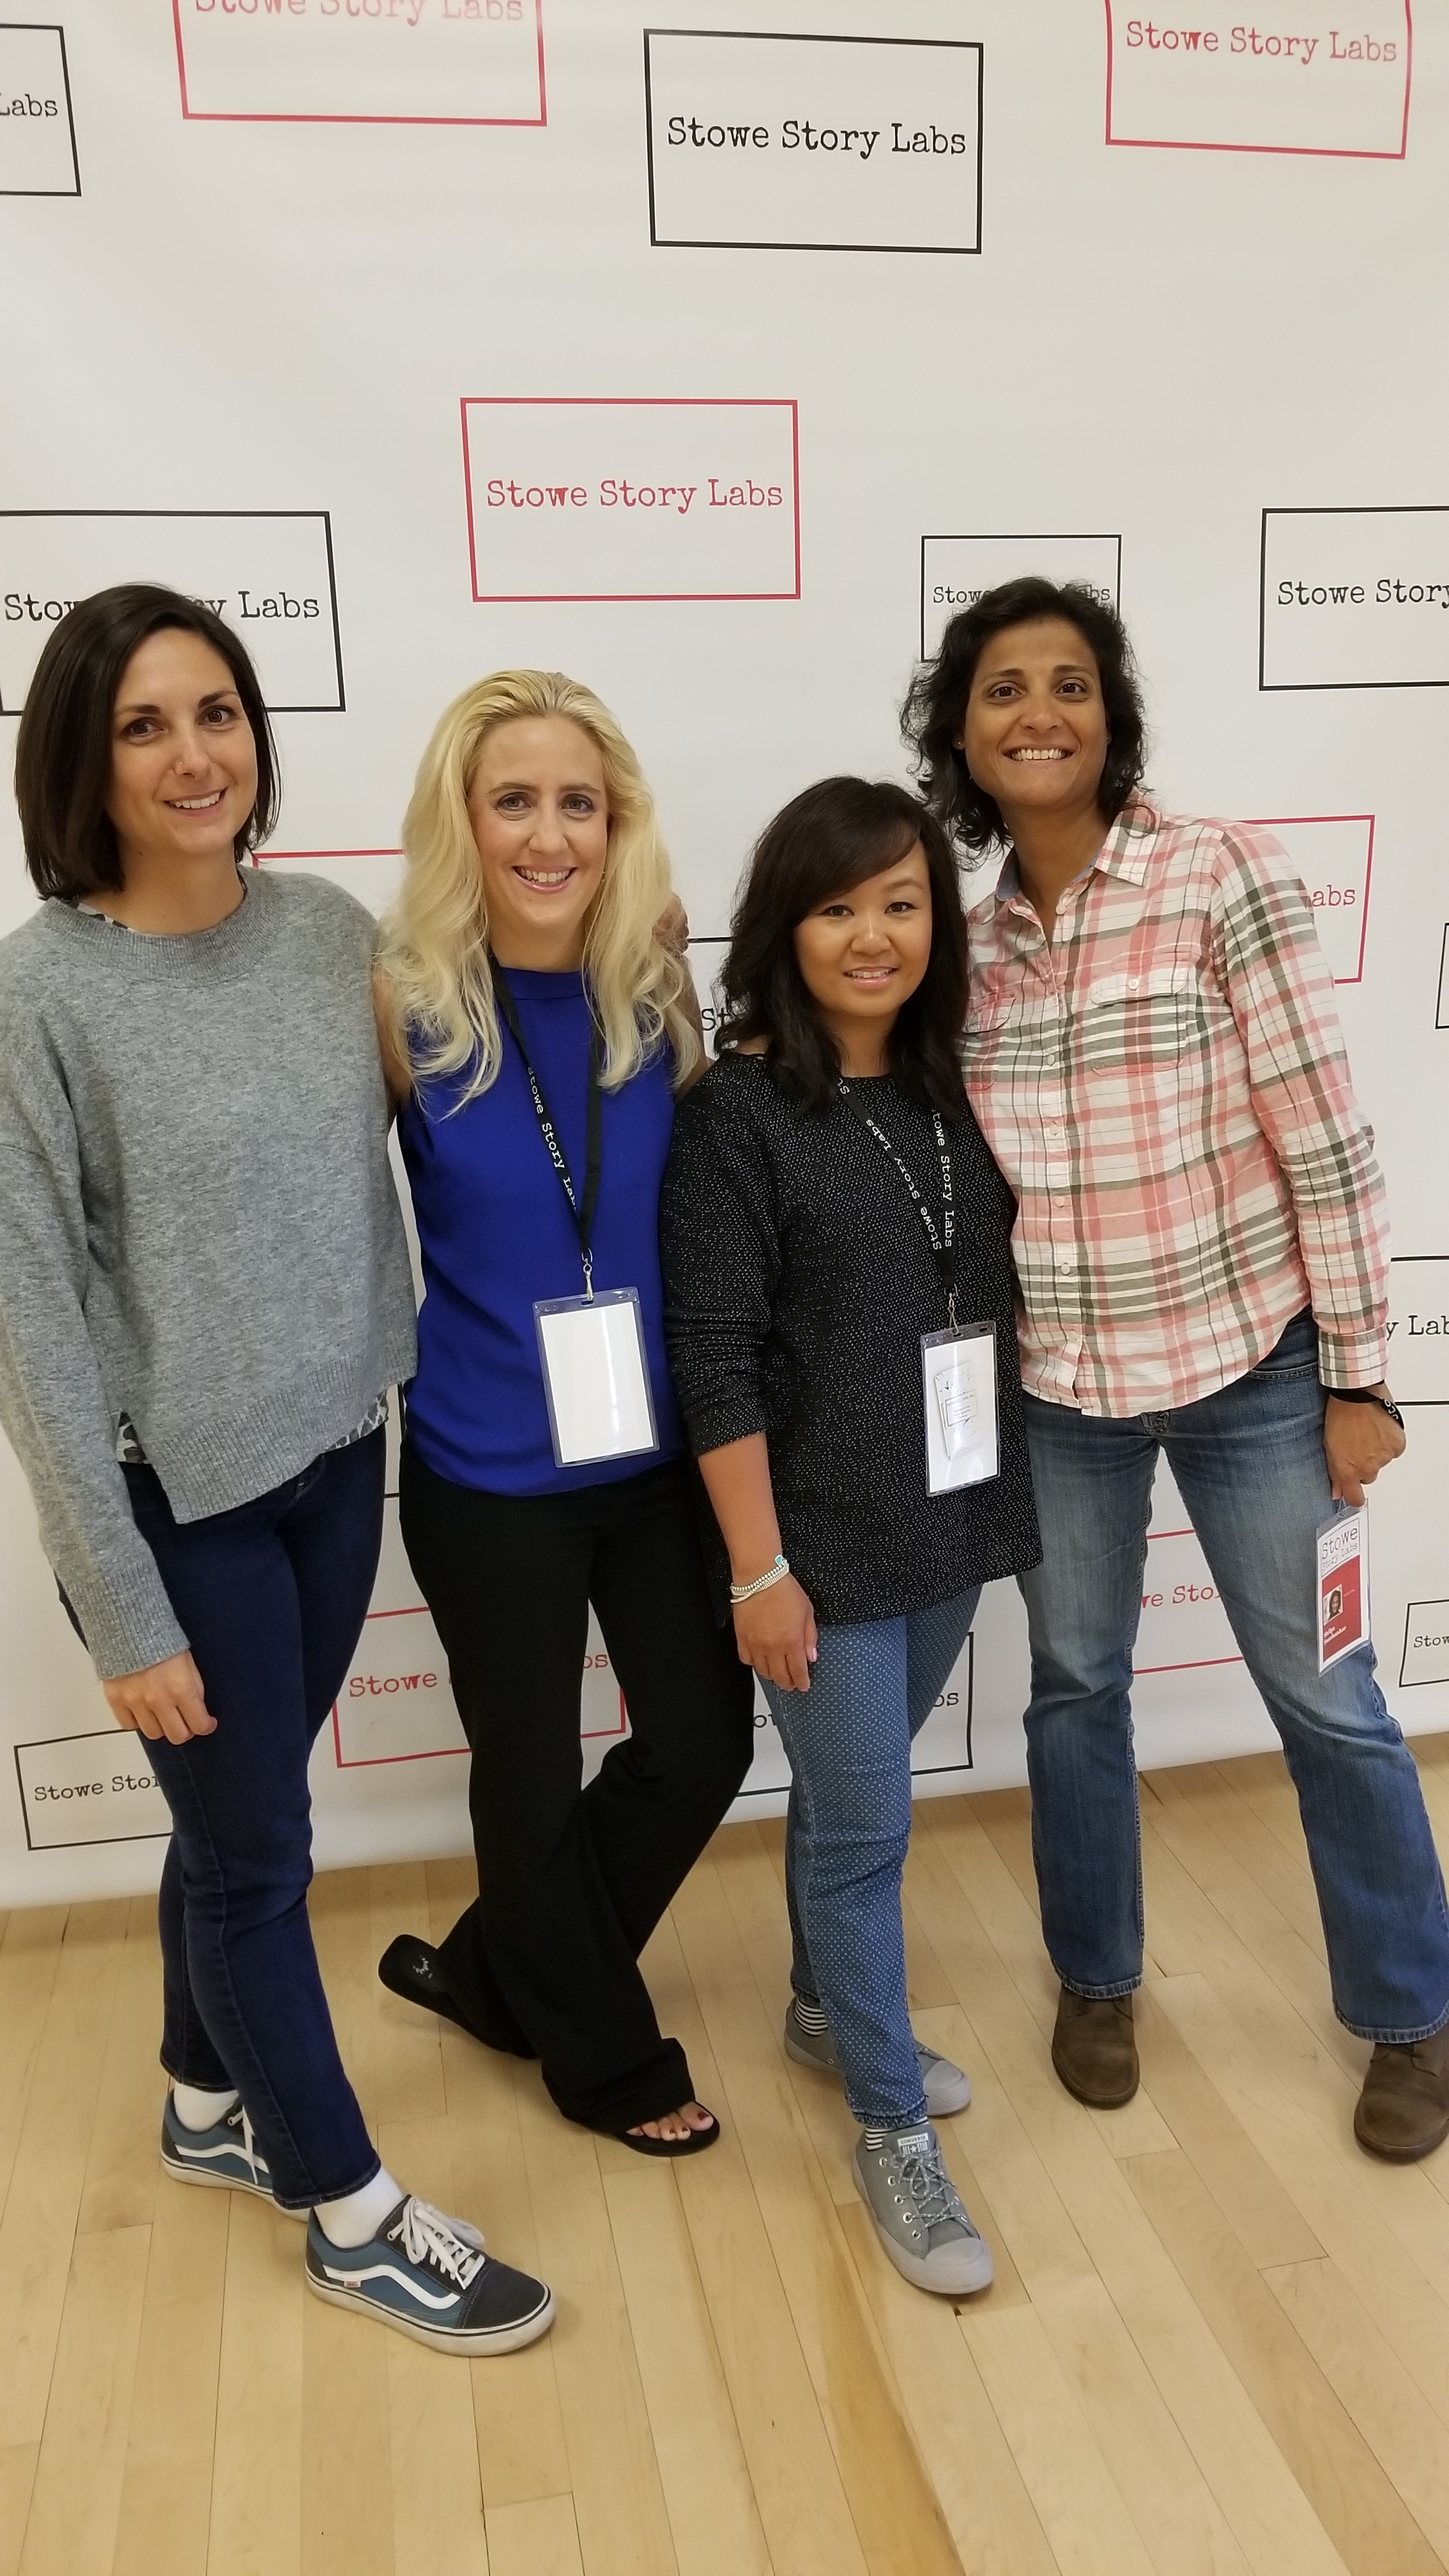 My phenomenal peer group: Valerie Bischoff, Lisa Rysinger, Natasha Chee. Look out for these amazingly talented ladies! Great stories here.